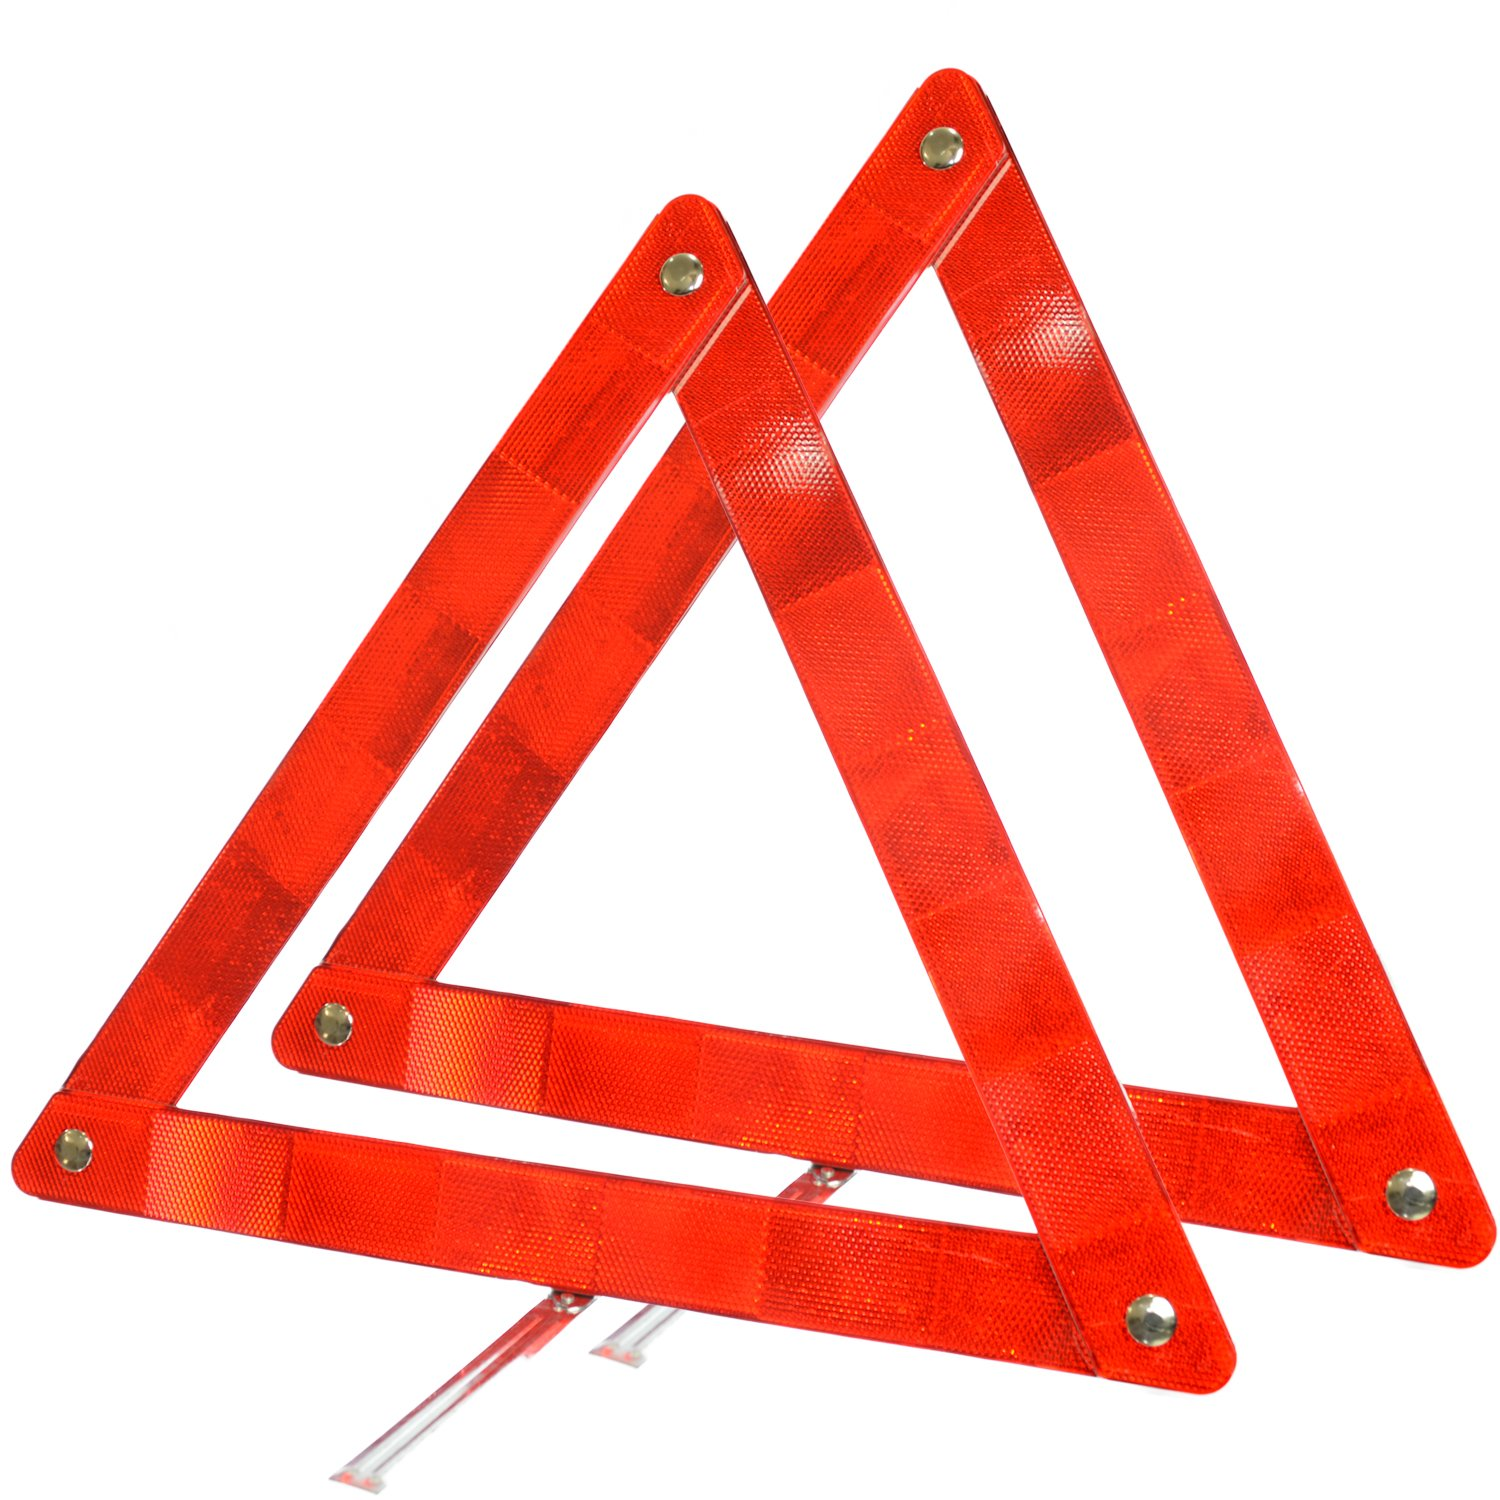 Majic Triangle Warning Reflector Alerts Motorist in case of Emergency or Tire Change, Collapsable Design (2-Pack)